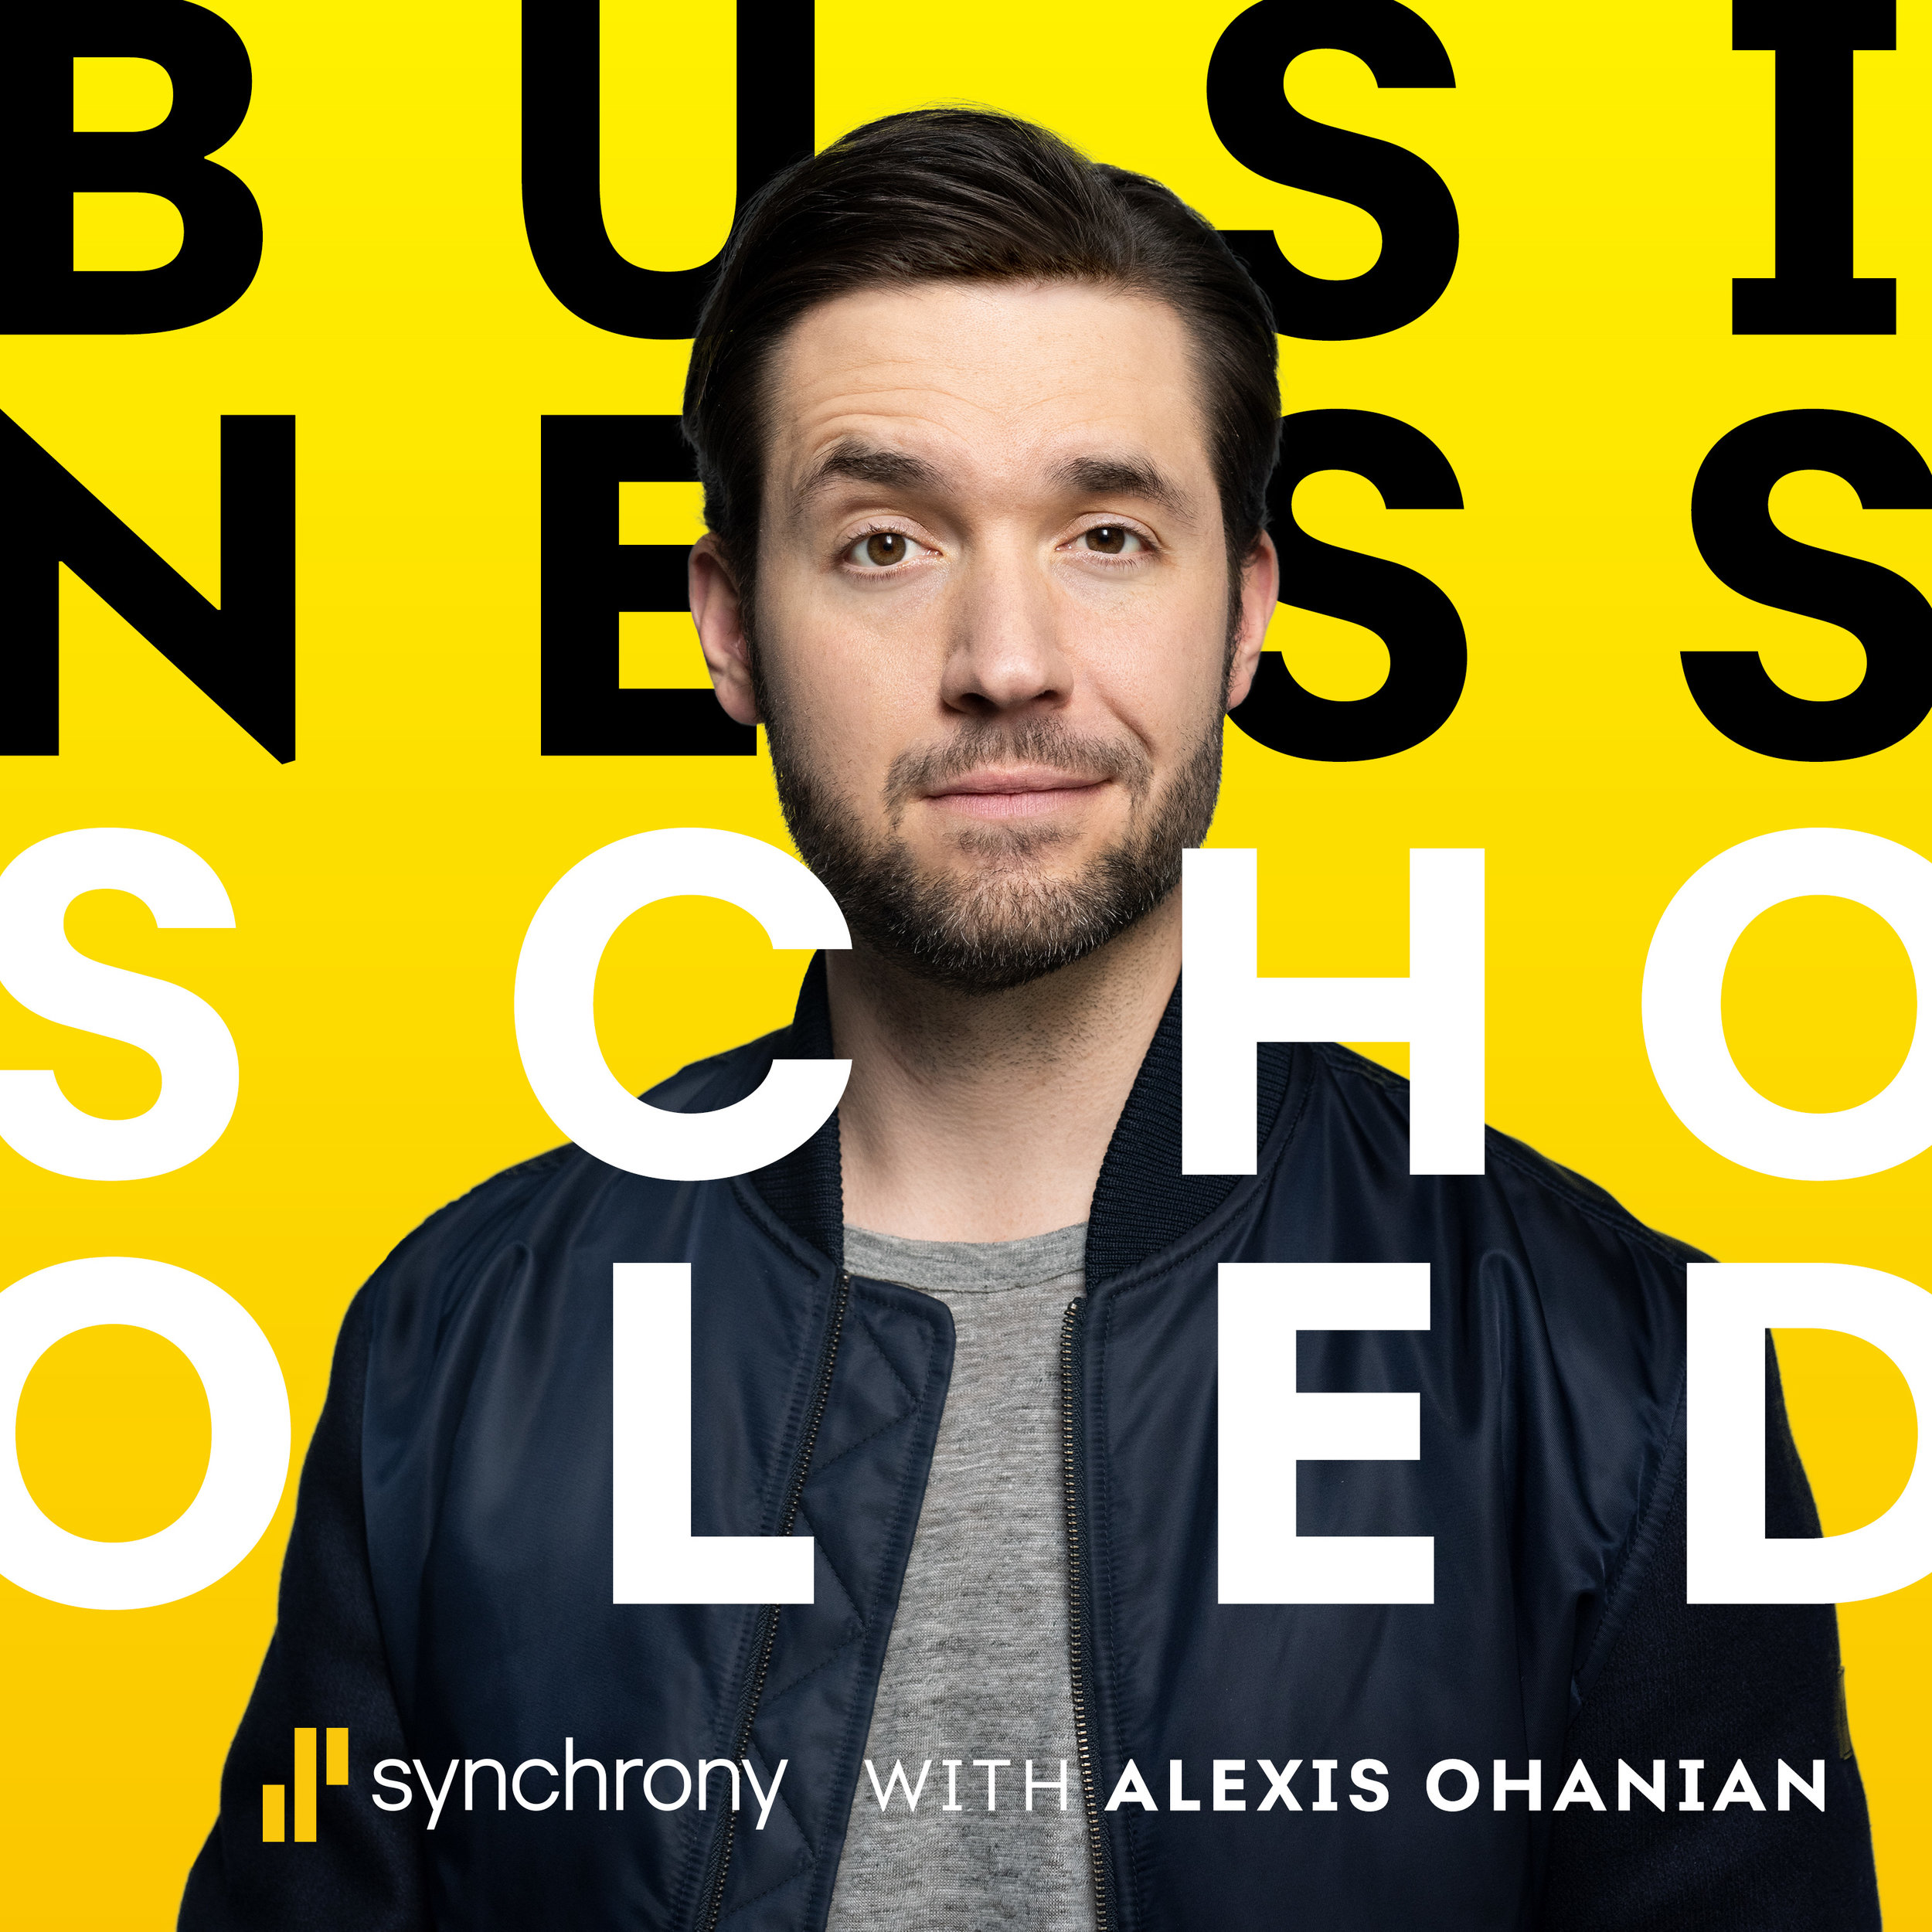 Business Schooled - Alexis Ohanian walks through the stories and lives of entrepreneurs that are not the typical millennial tech entrepreneur, but rather older generations starting great businesses that are in a variety of industries. He captures the beauty of each story and does a great job highlighting the entrepreneur's struggles, but more importantly how he or she overcomes them and creates a great business with strong and positive values.